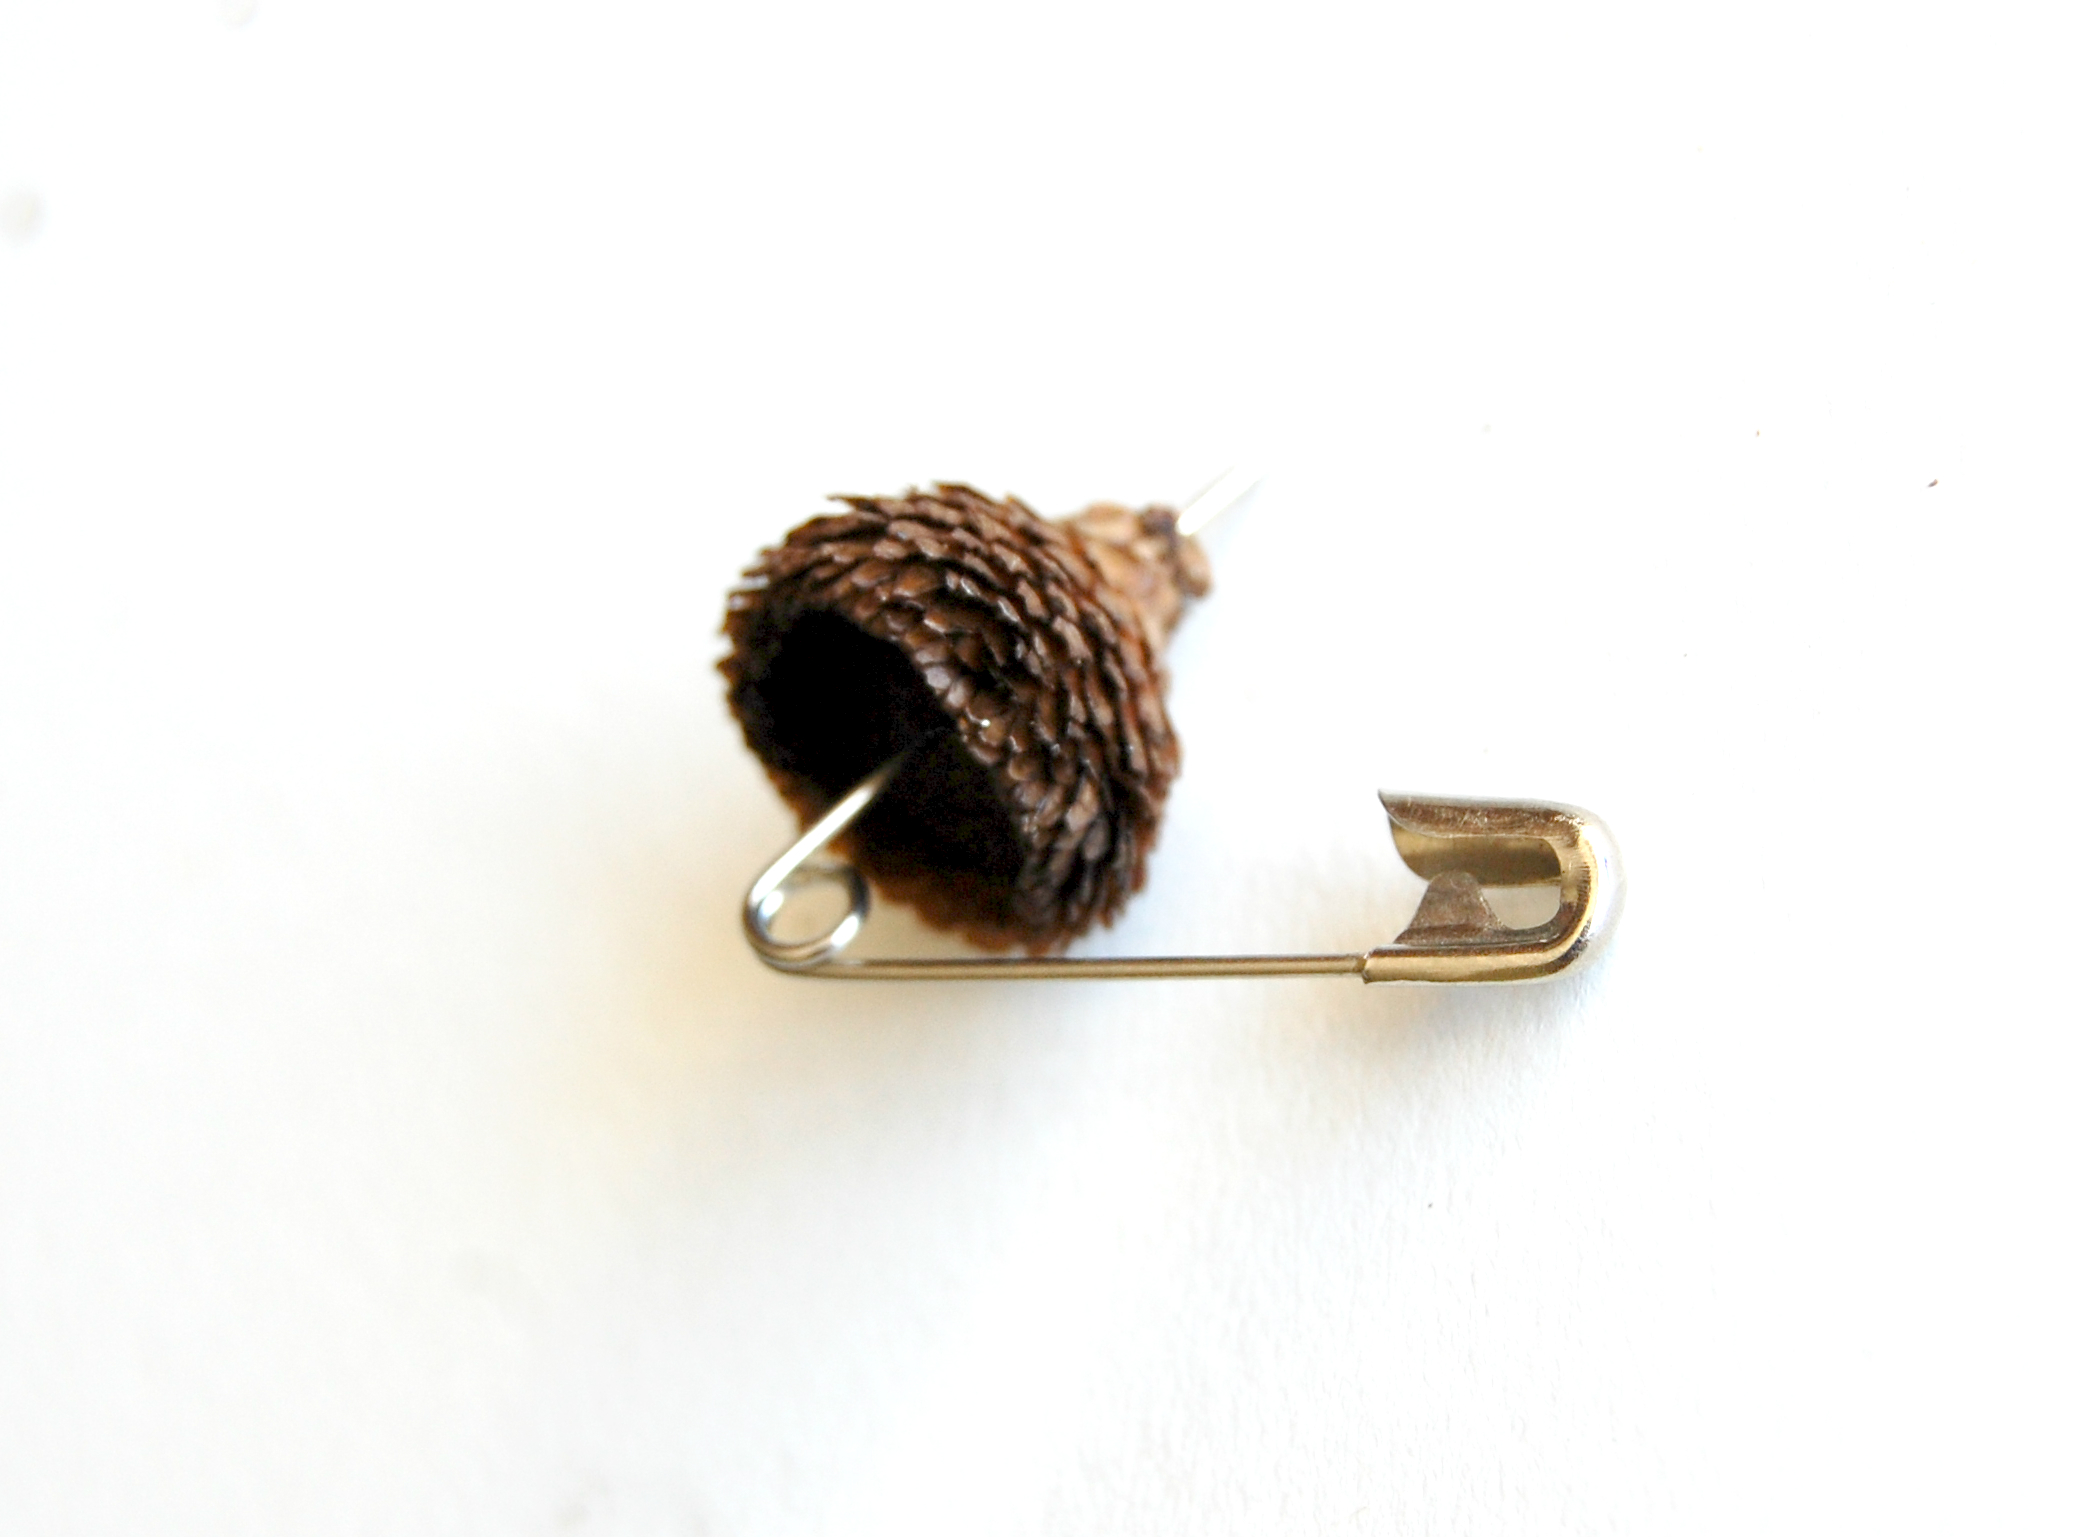 Acorn Safety Pin